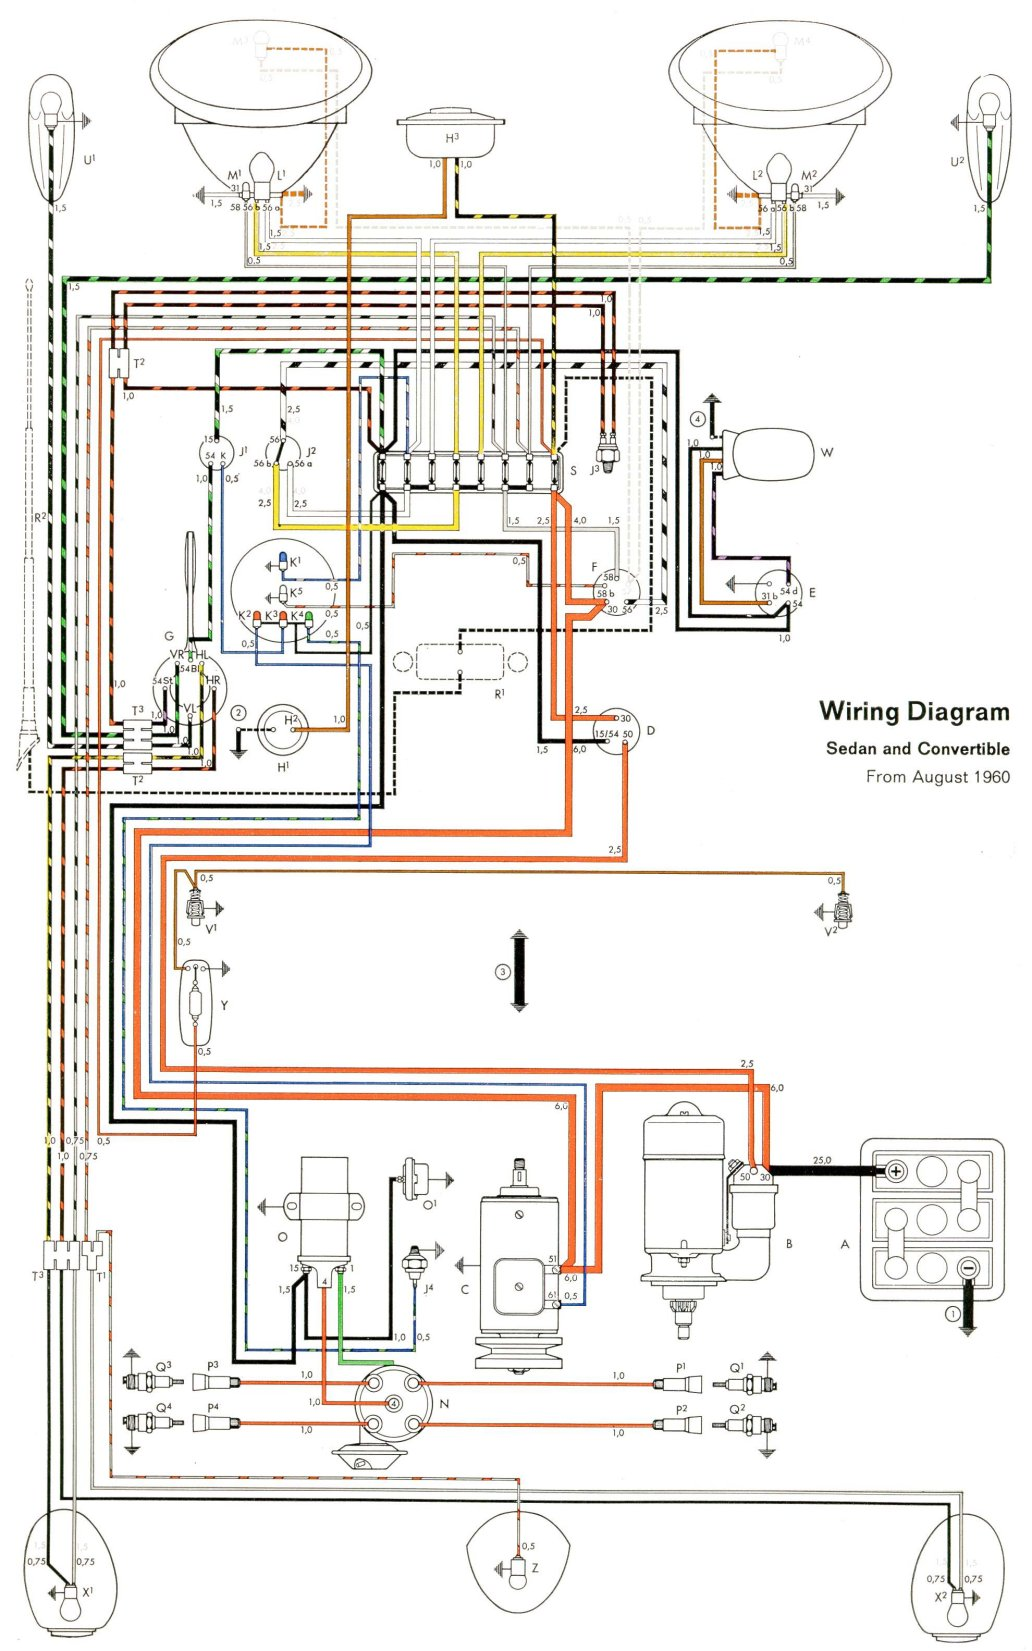 bug_61 thesamba com type 1 wiring diagrams vw wiring diagrams at gsmx.co